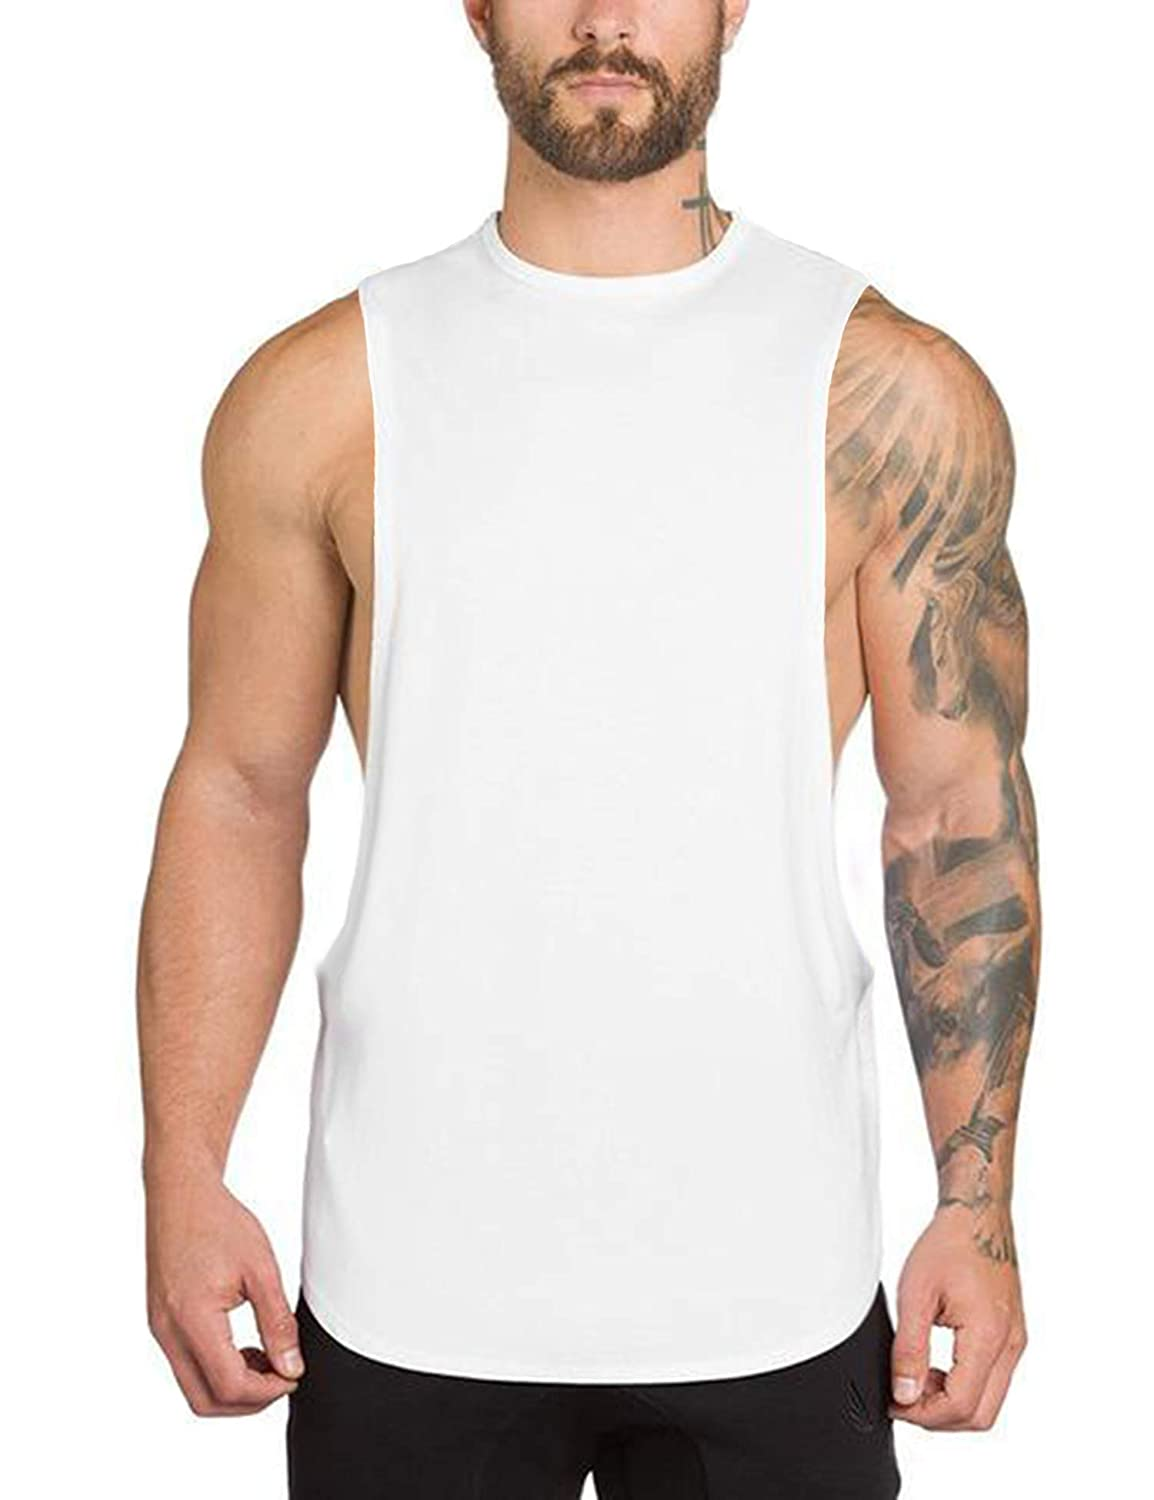 COOFANDY Men's Workout Tank Tops Bodybuilding Fitness Athletic Sports Muscle Tank Gym Stringer 71000469